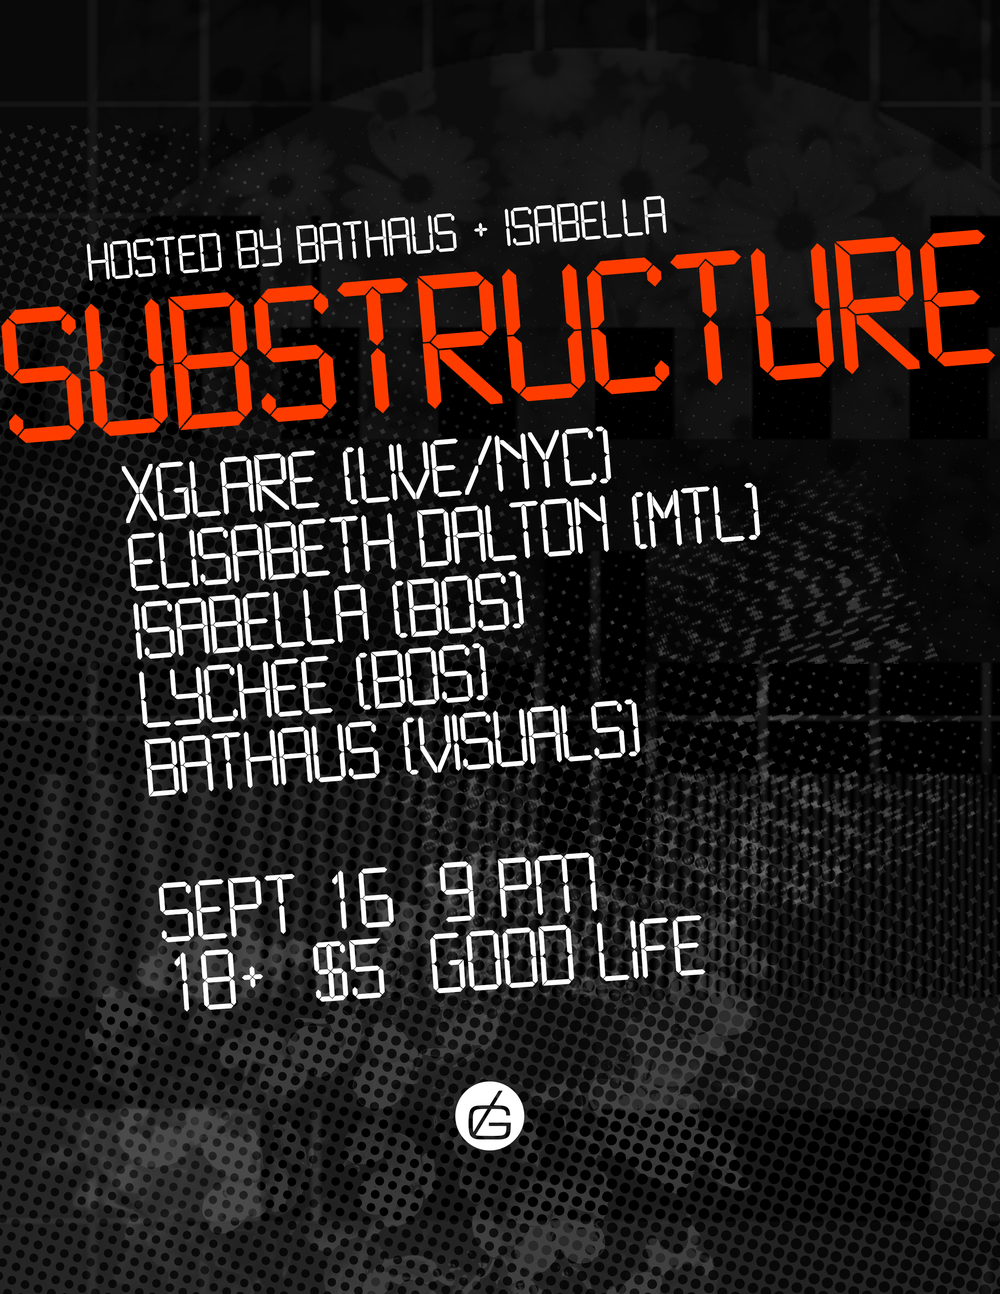 Substructure Flyer